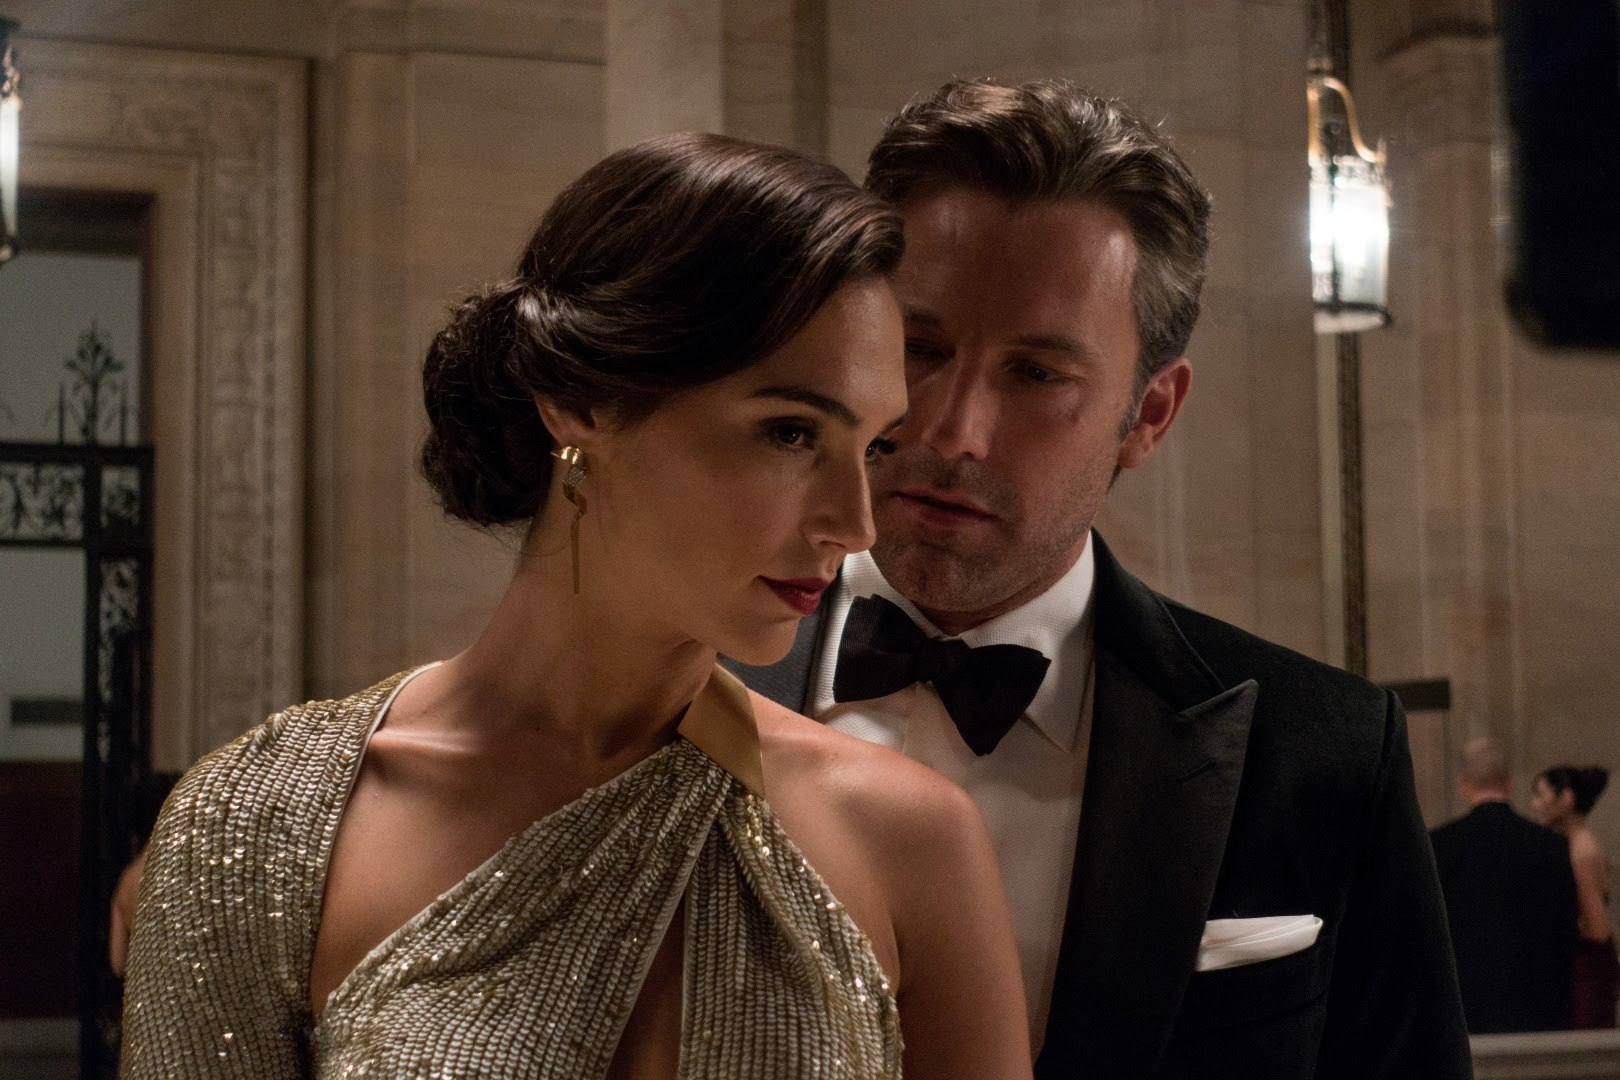 Wonder Woman was almost a Bond girl